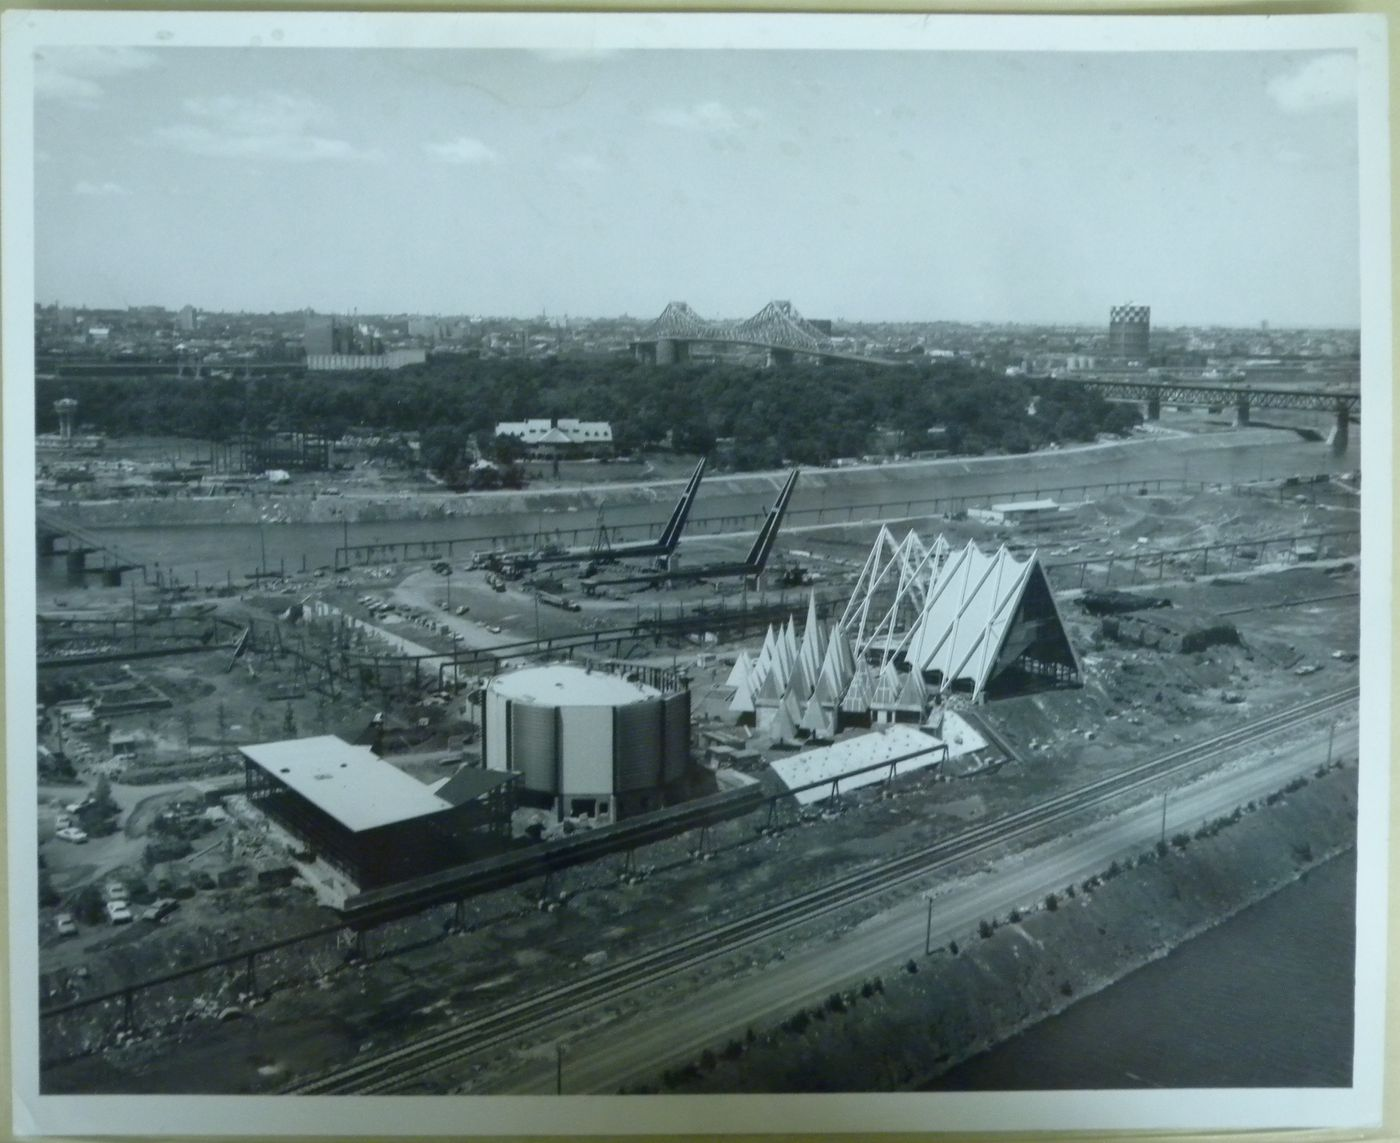 View of the Île Notre-Dame site at its early construction stage, Expo 67, Montréal, Québec